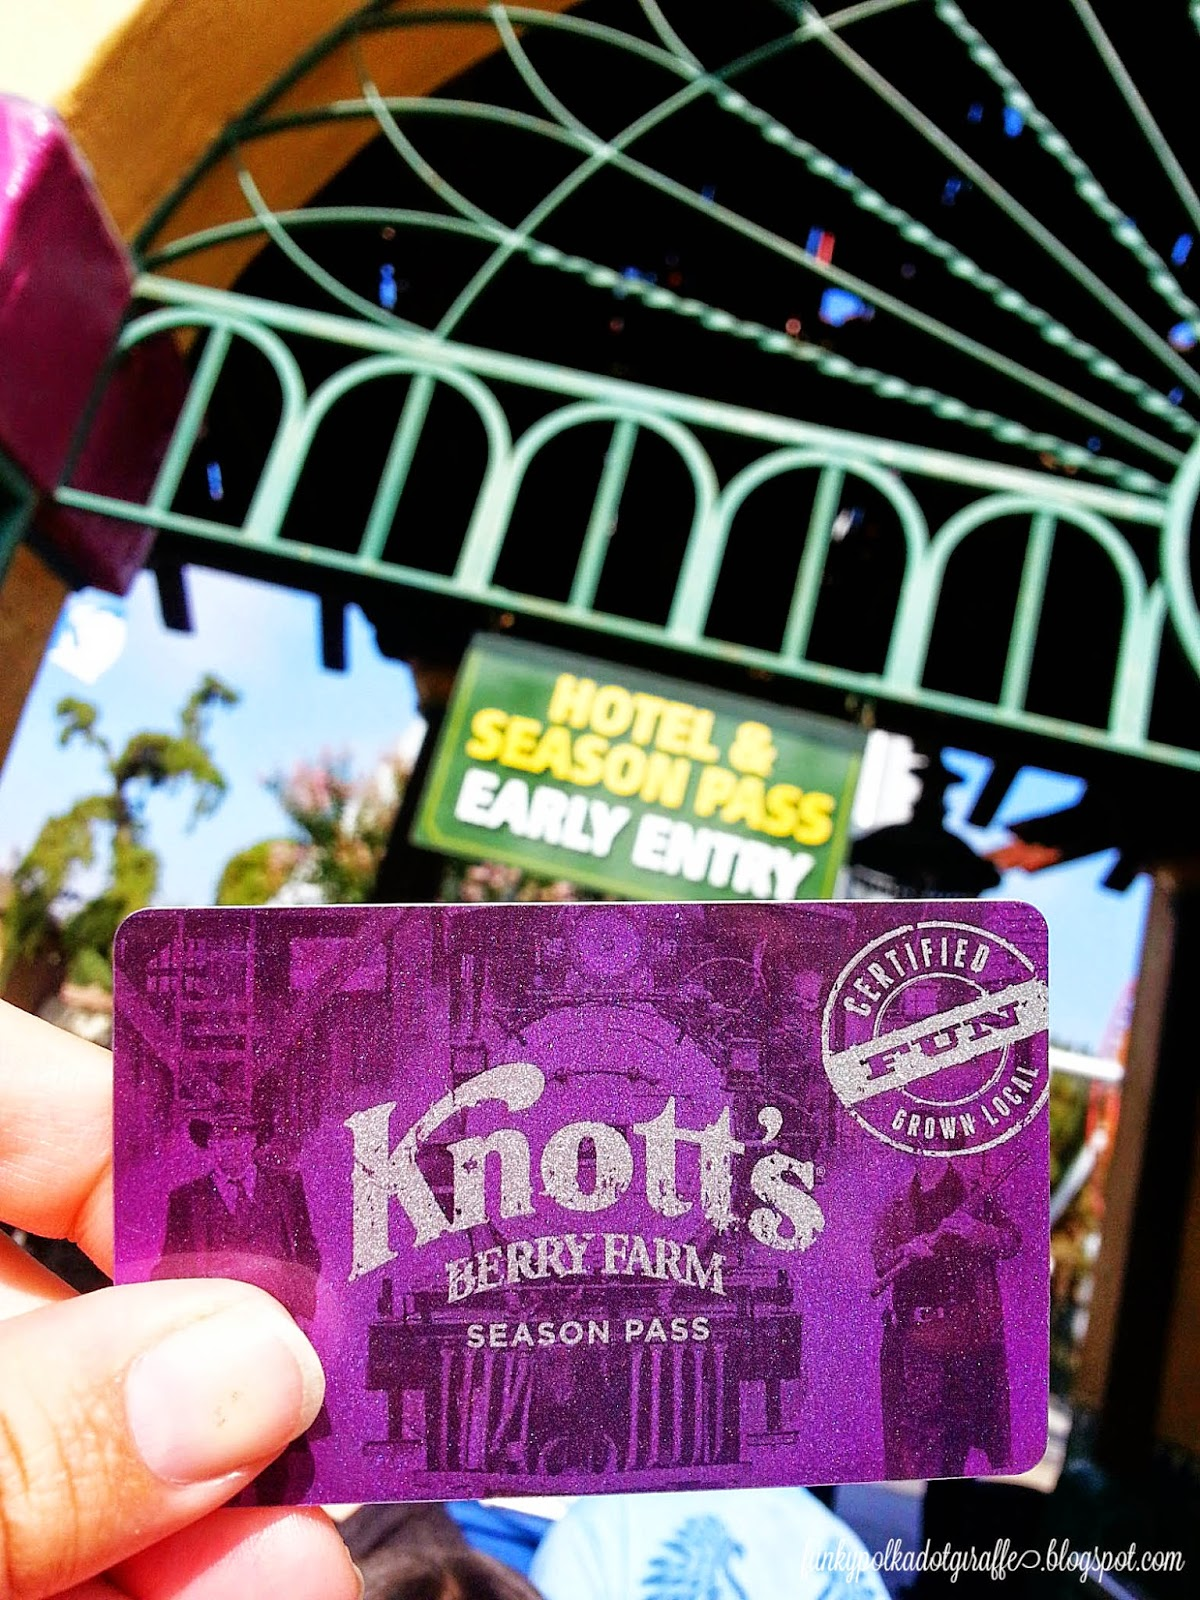 Knotts Berry farm Season Pass